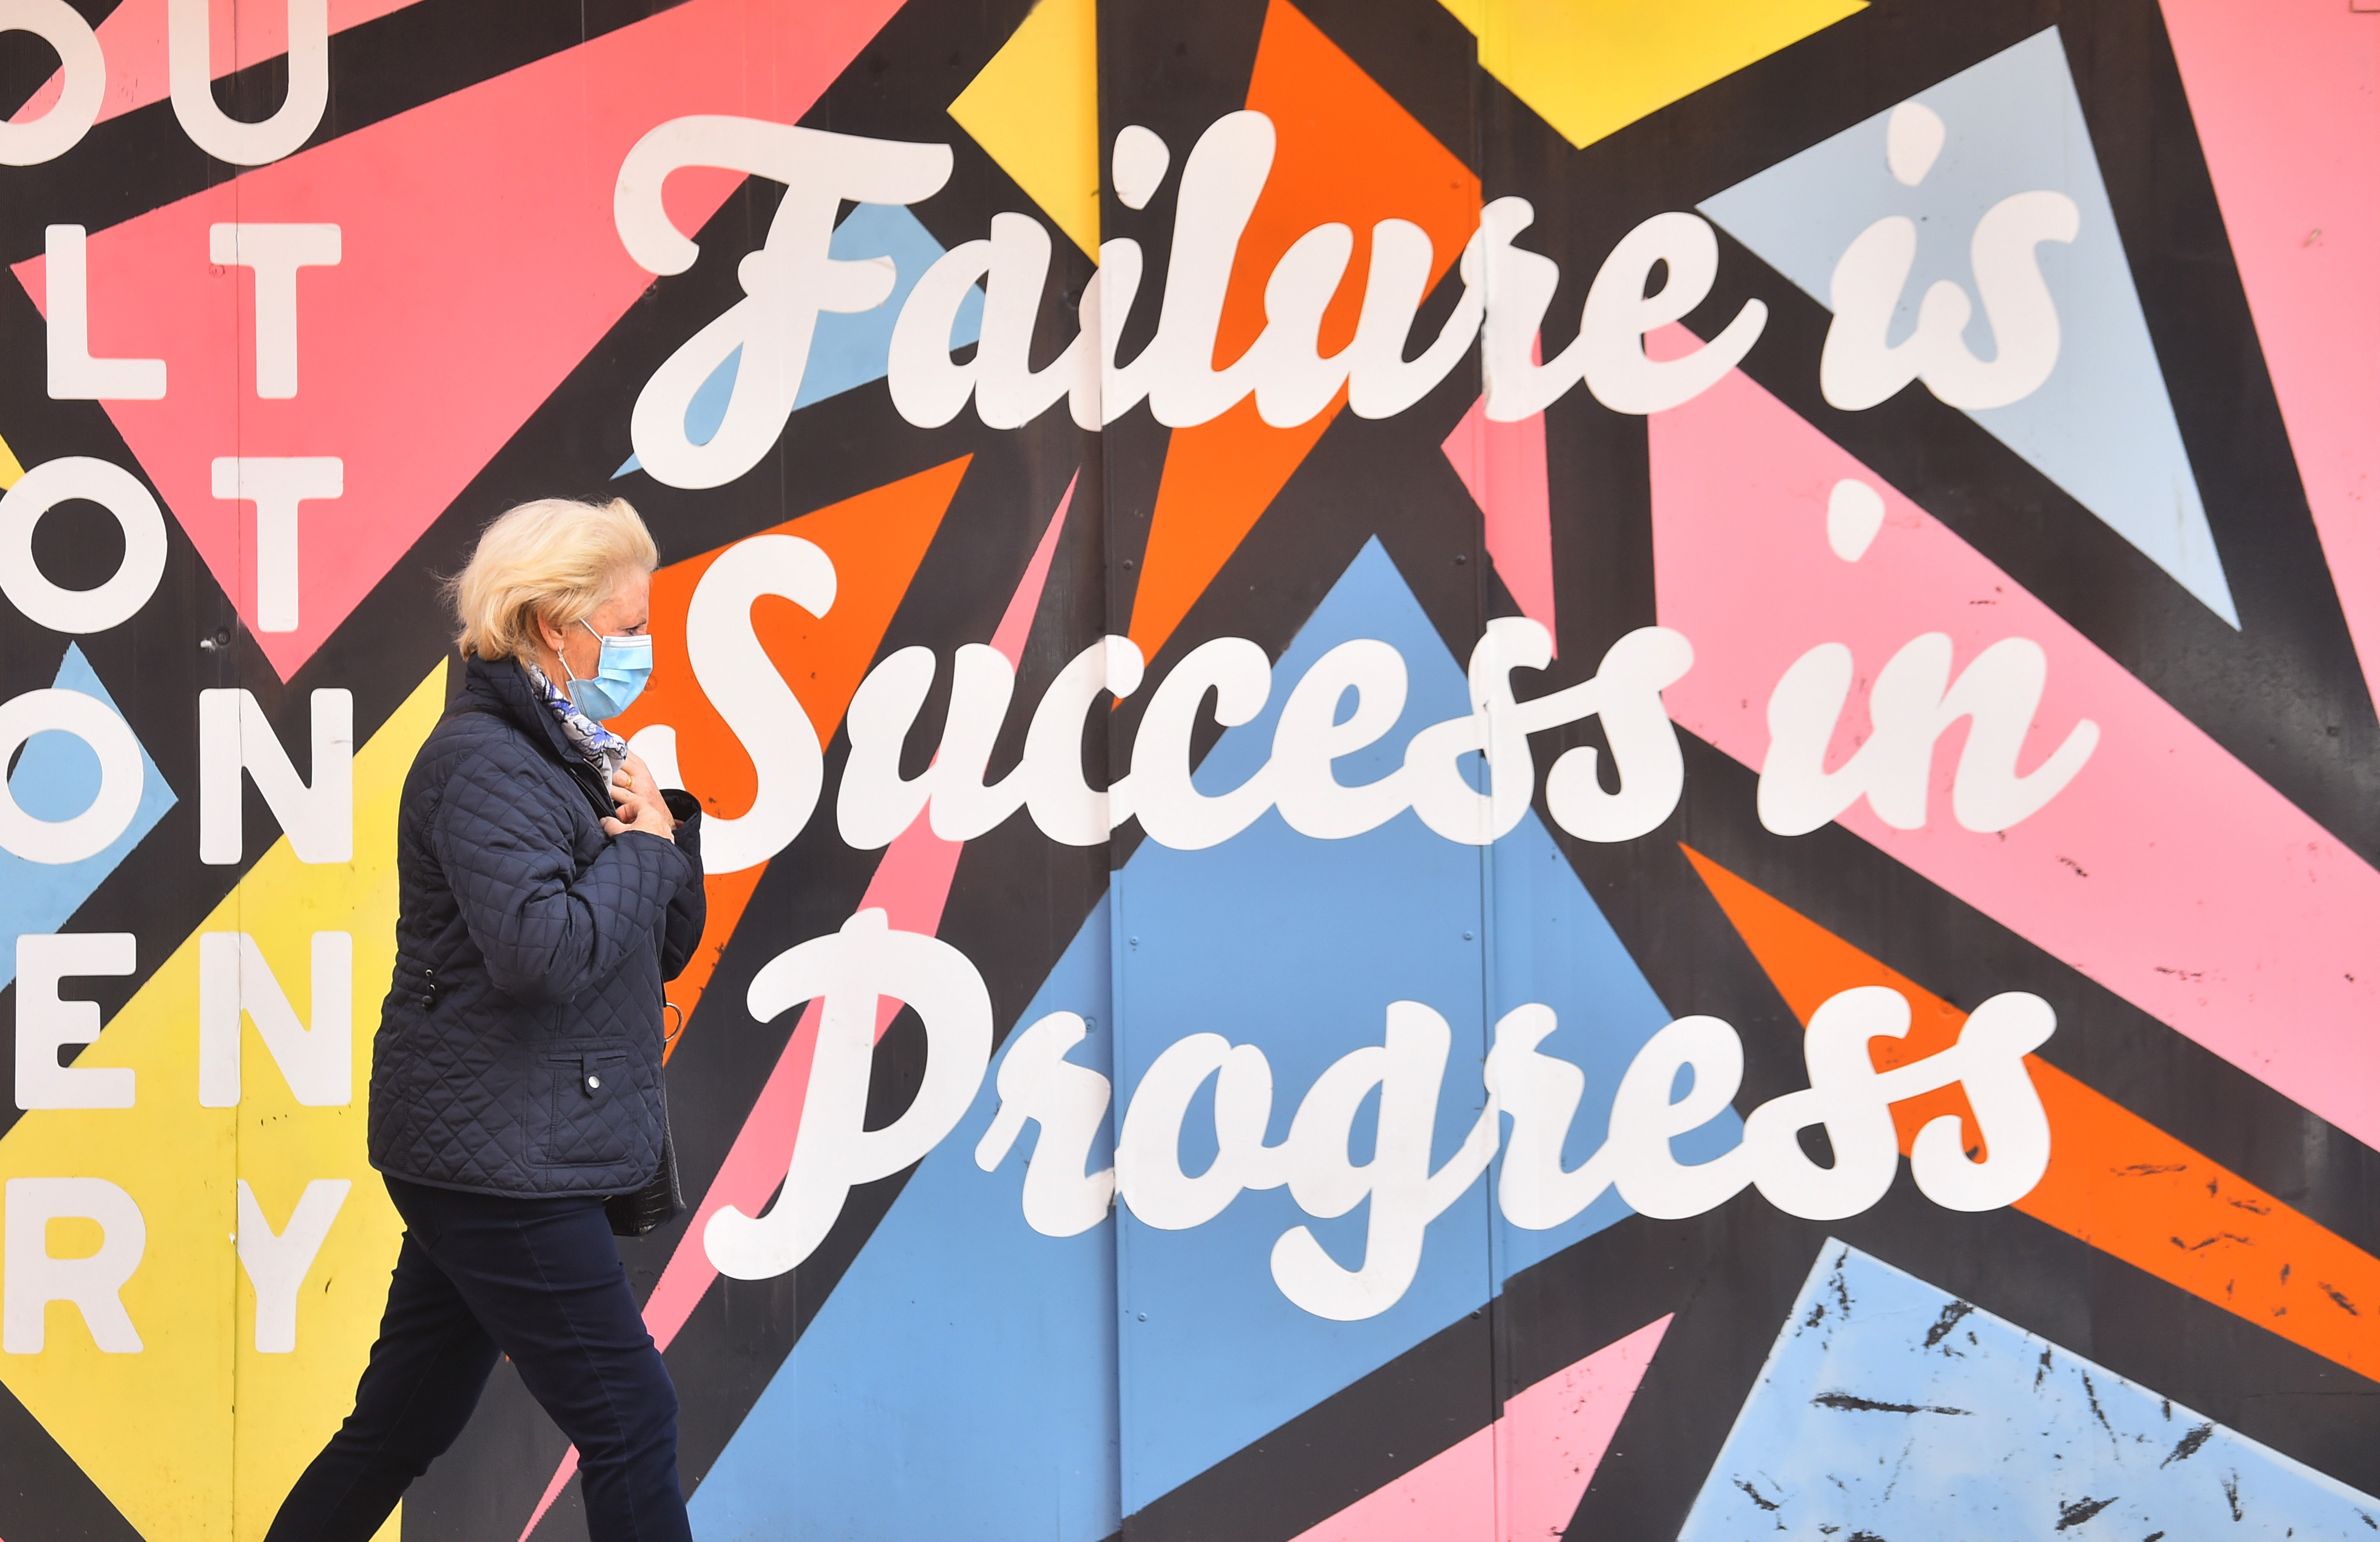 <p>STOKE-ON-TRENT, ENGLAND - APRIL 08: A lady wearing a mask walks past artwork saying 'Failure is success in progress' on April 08, 2021 in Stoke-on-Trent,England . (Photo by Nathan Stirk/Getty Images)</p>